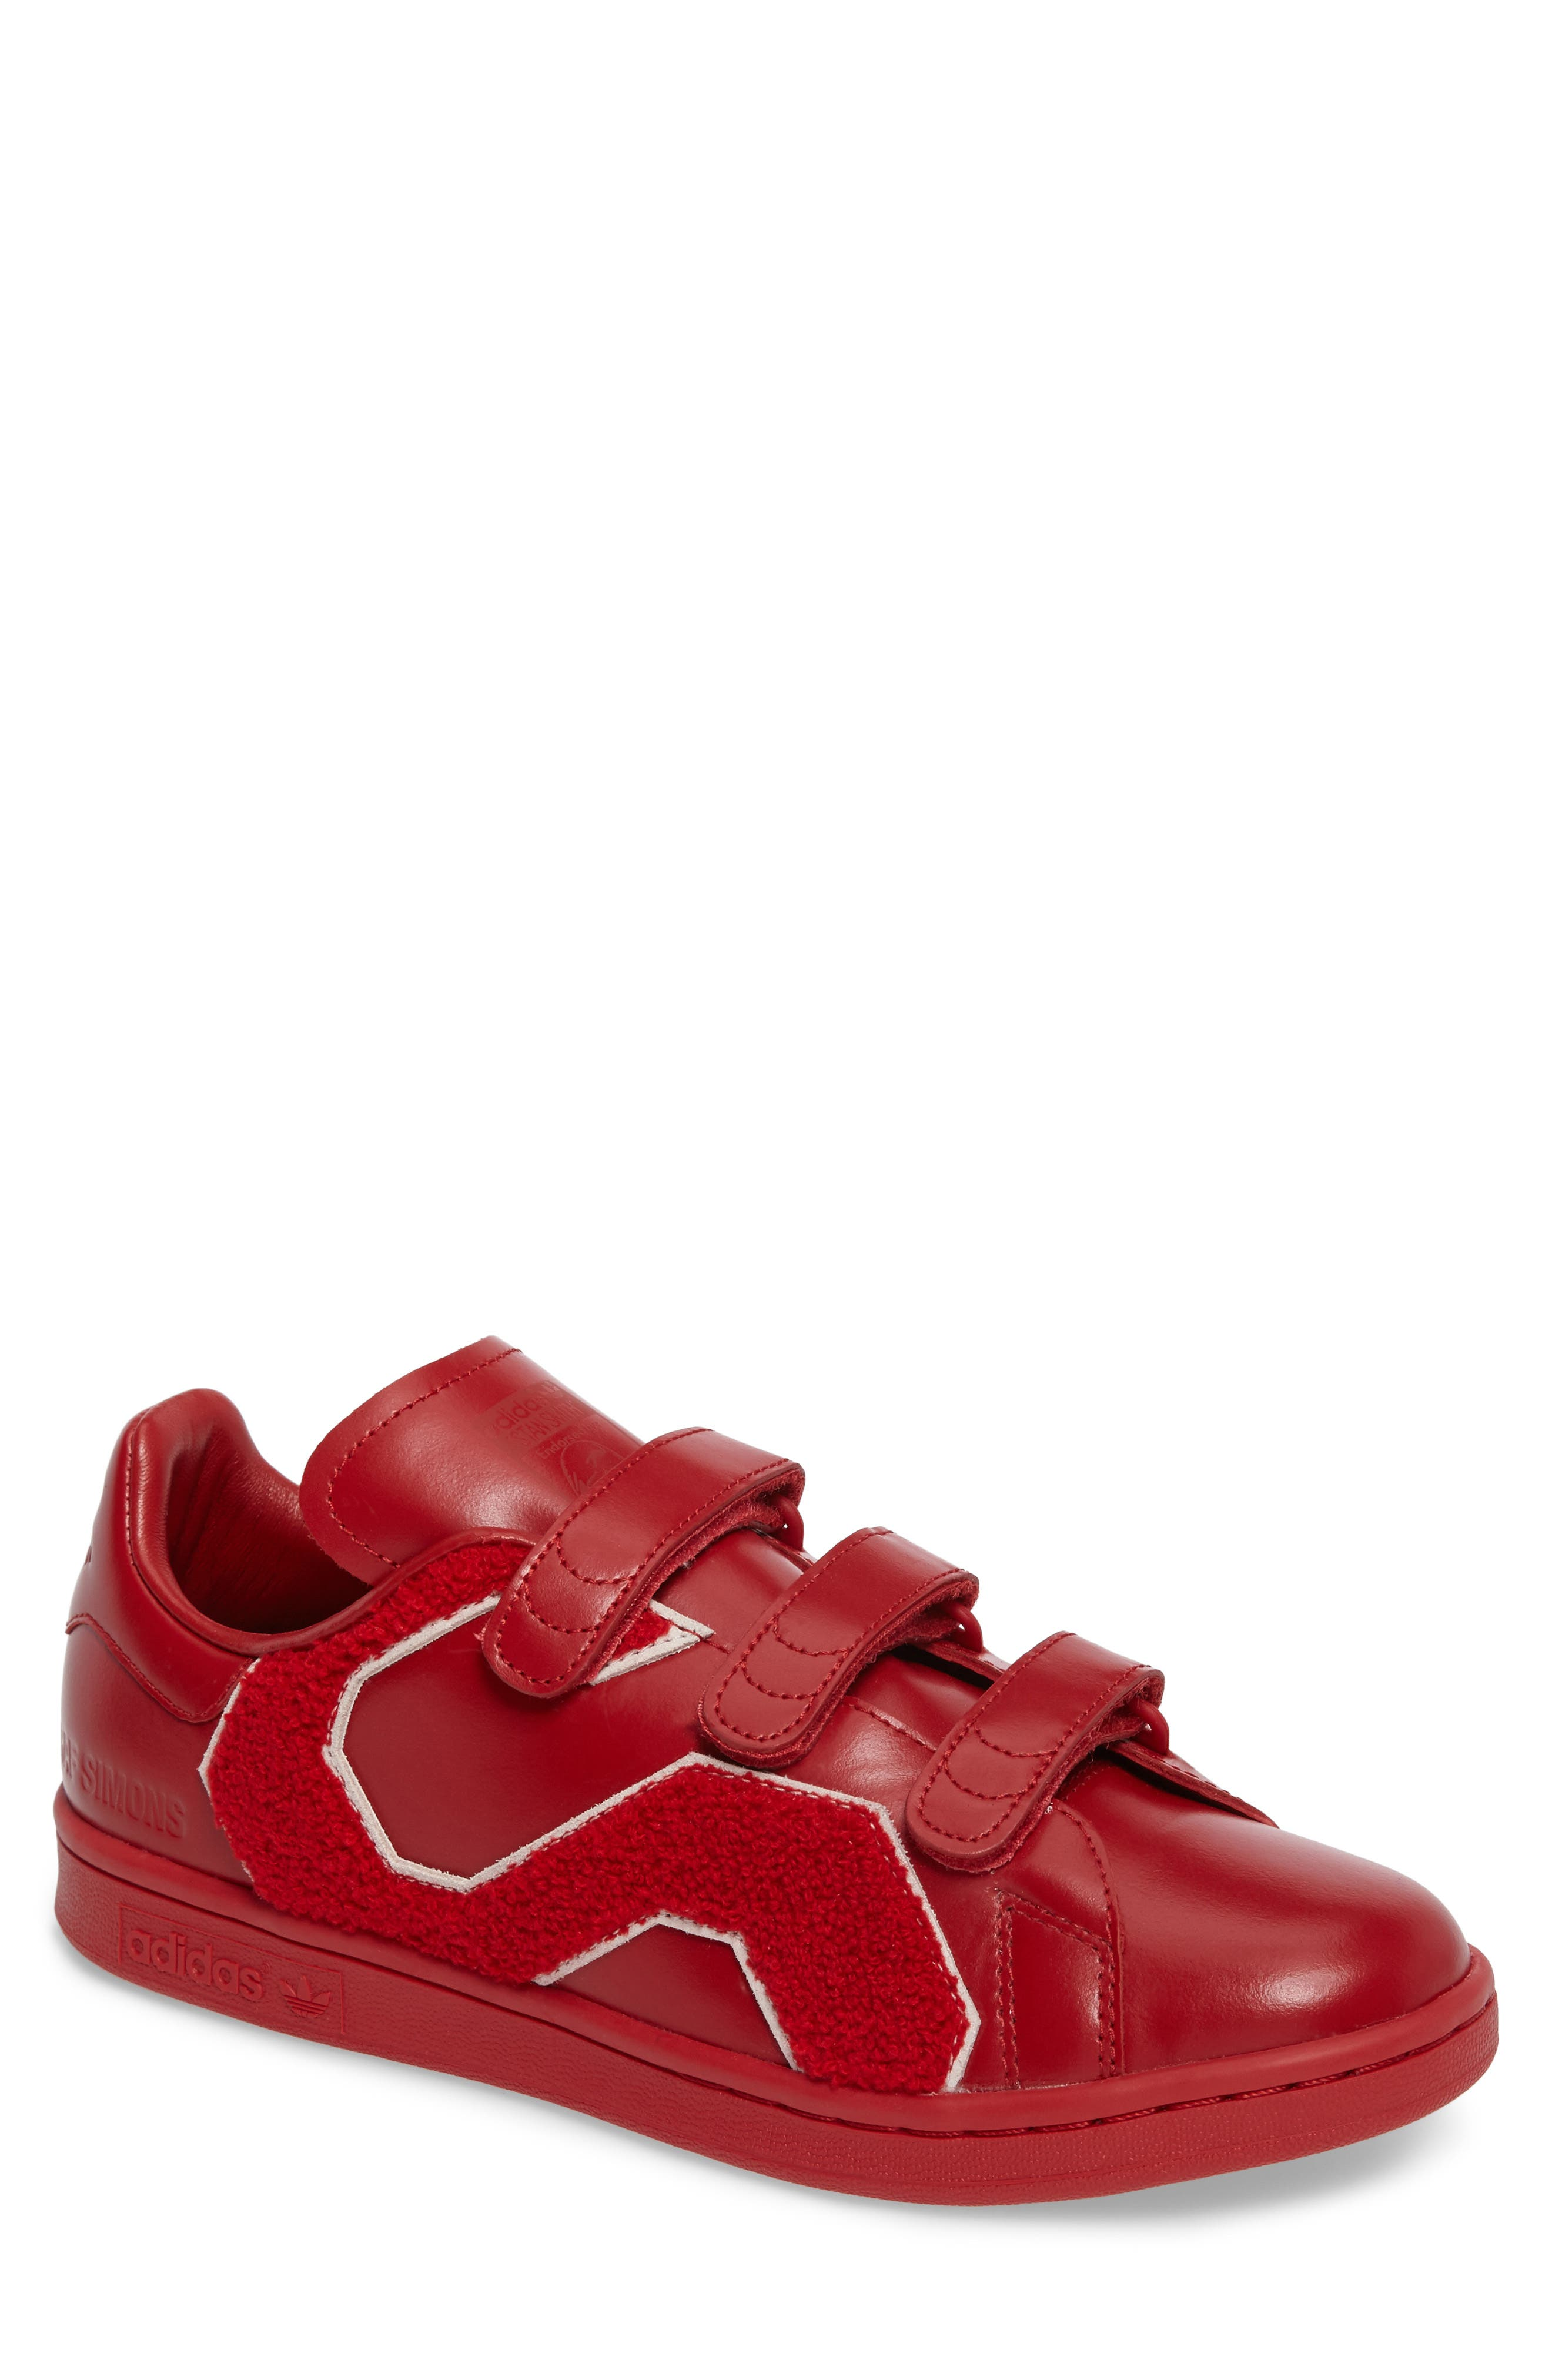 Stan Smith Sneaker,                         Main,                         color, Powder Red